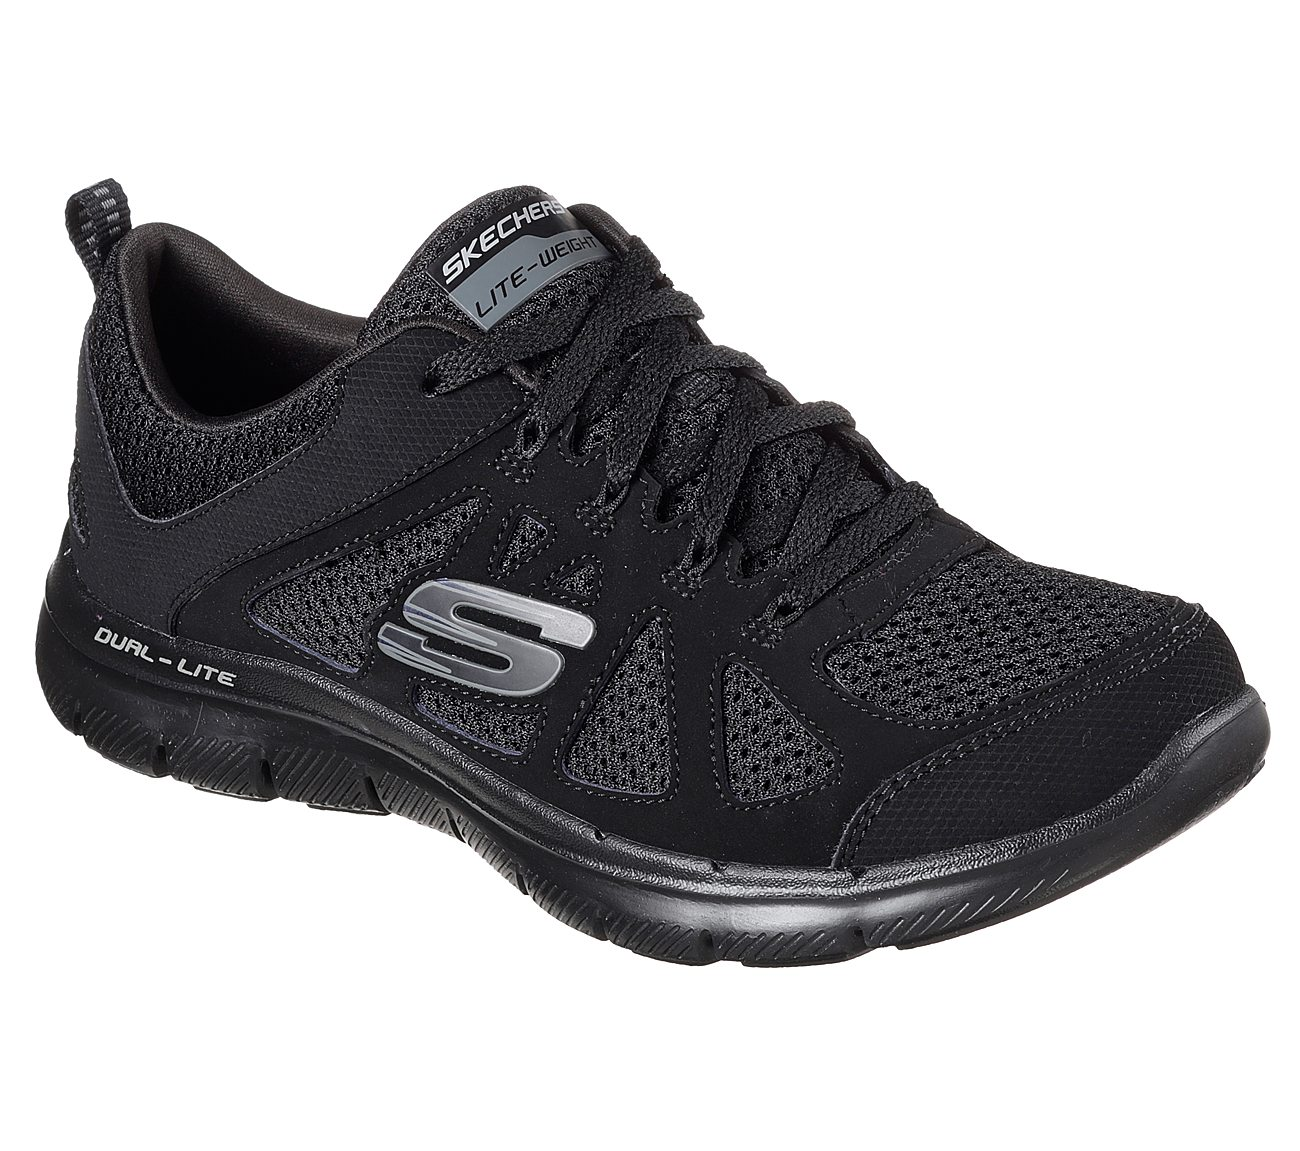 sketcher flex appeal